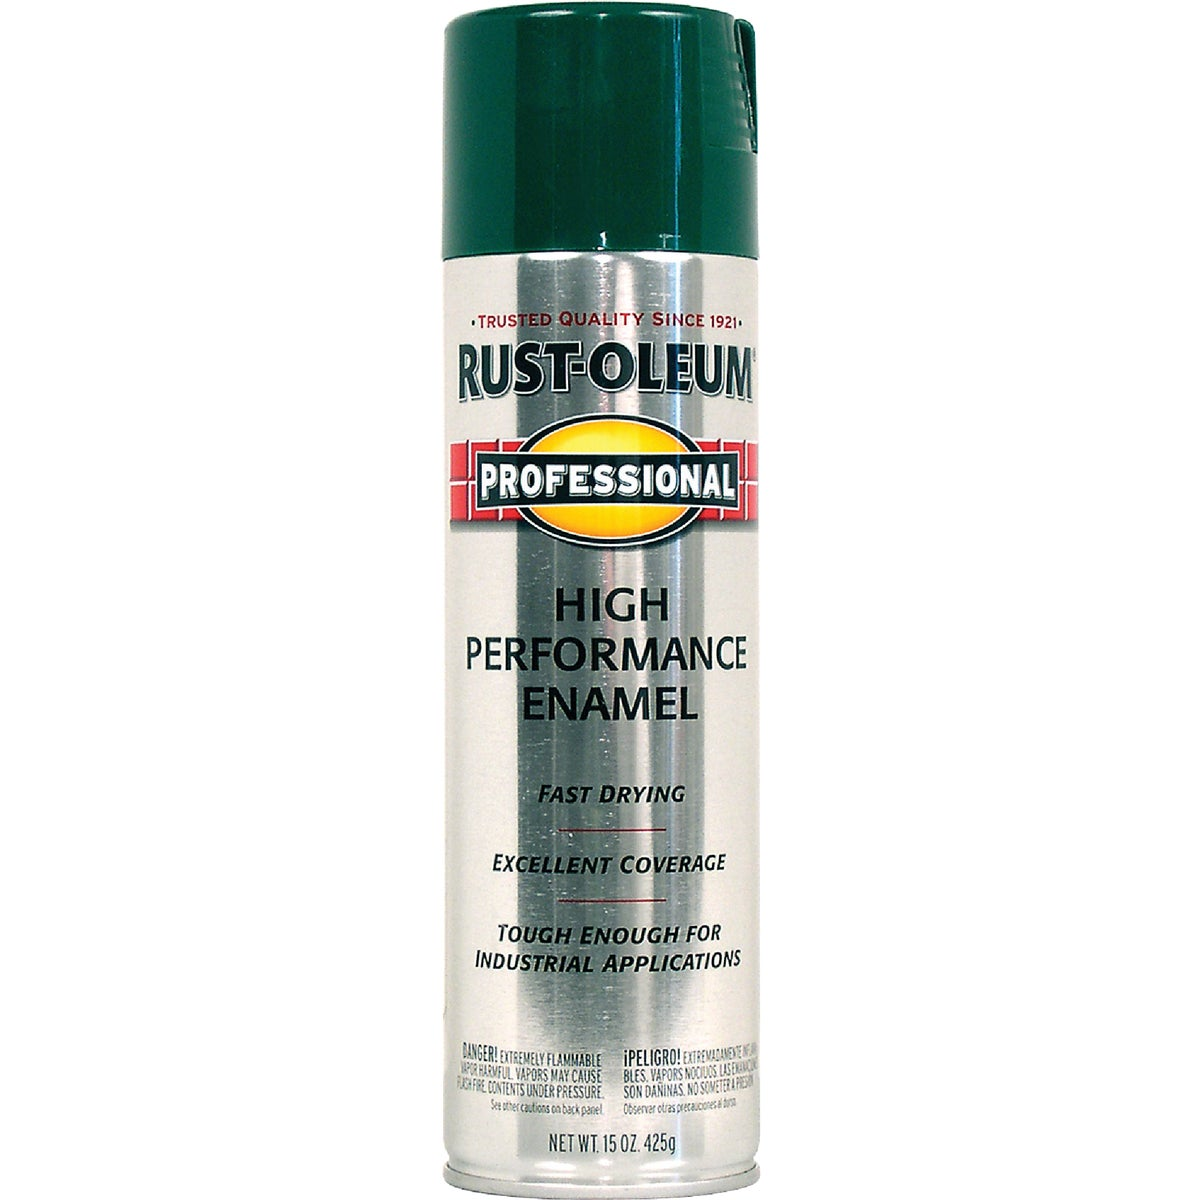 SAFE GRN PRO SPRAY PAINT - 7533-838 by Rustoleum